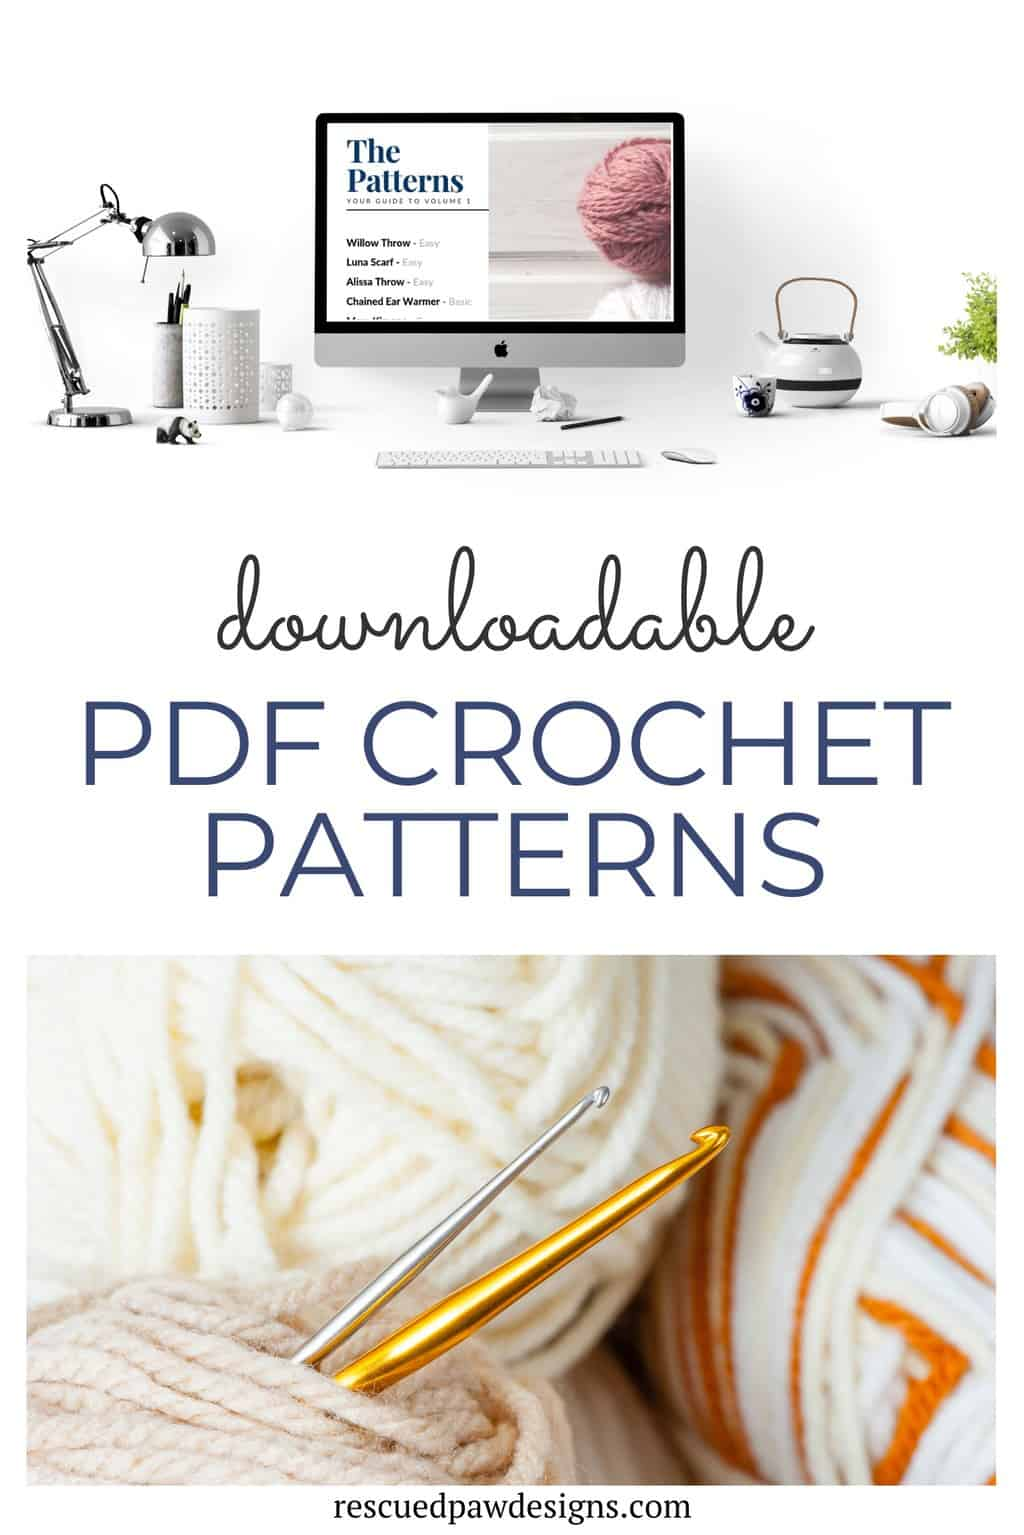 PDF Crochet Patterns